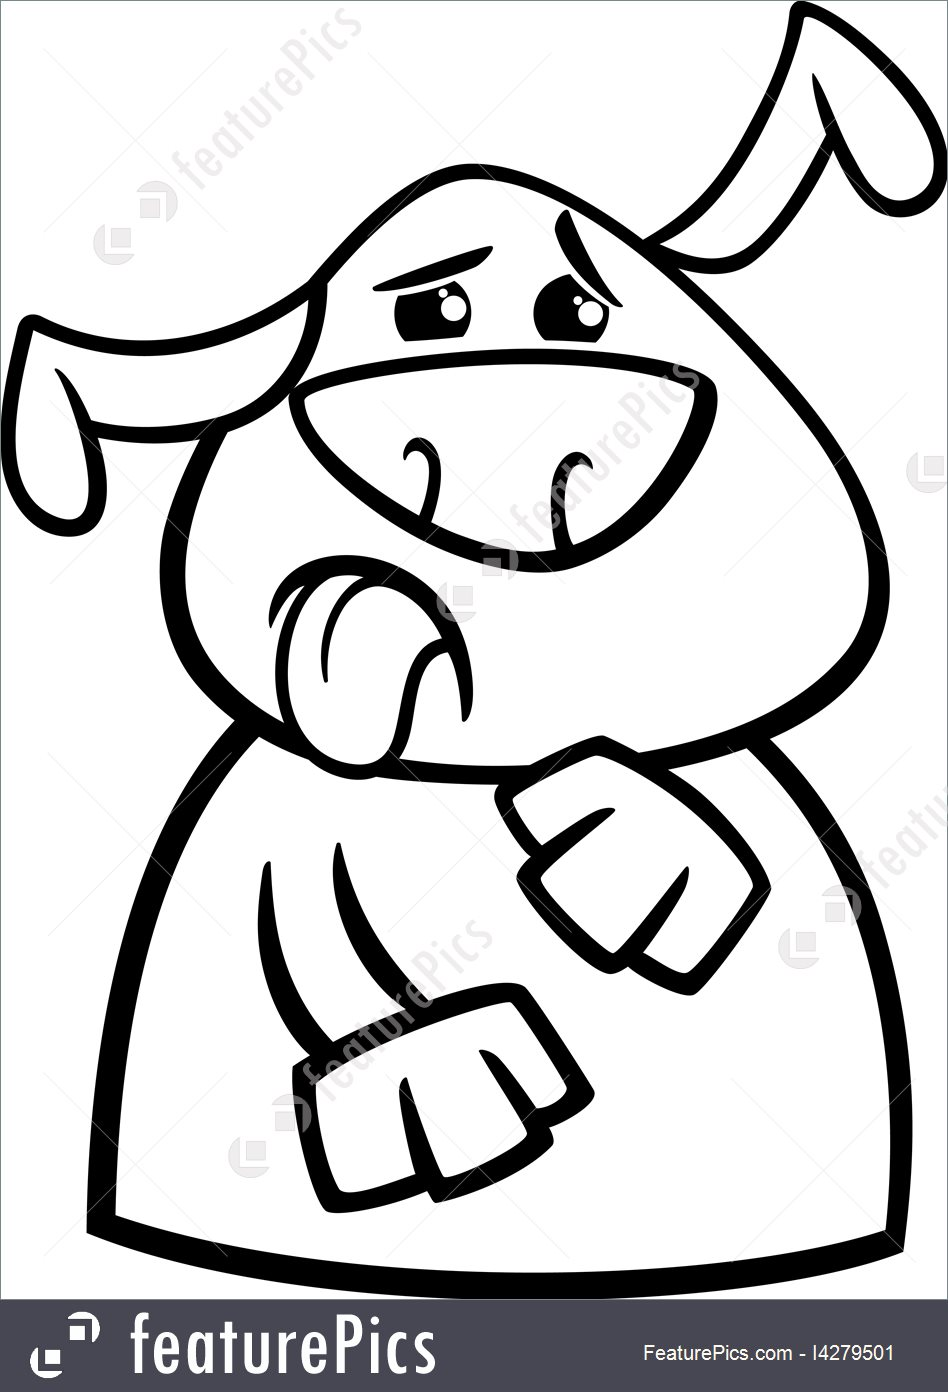 948x1392 Illustration Of Dog Yuck Face Cartoon Coloring Page